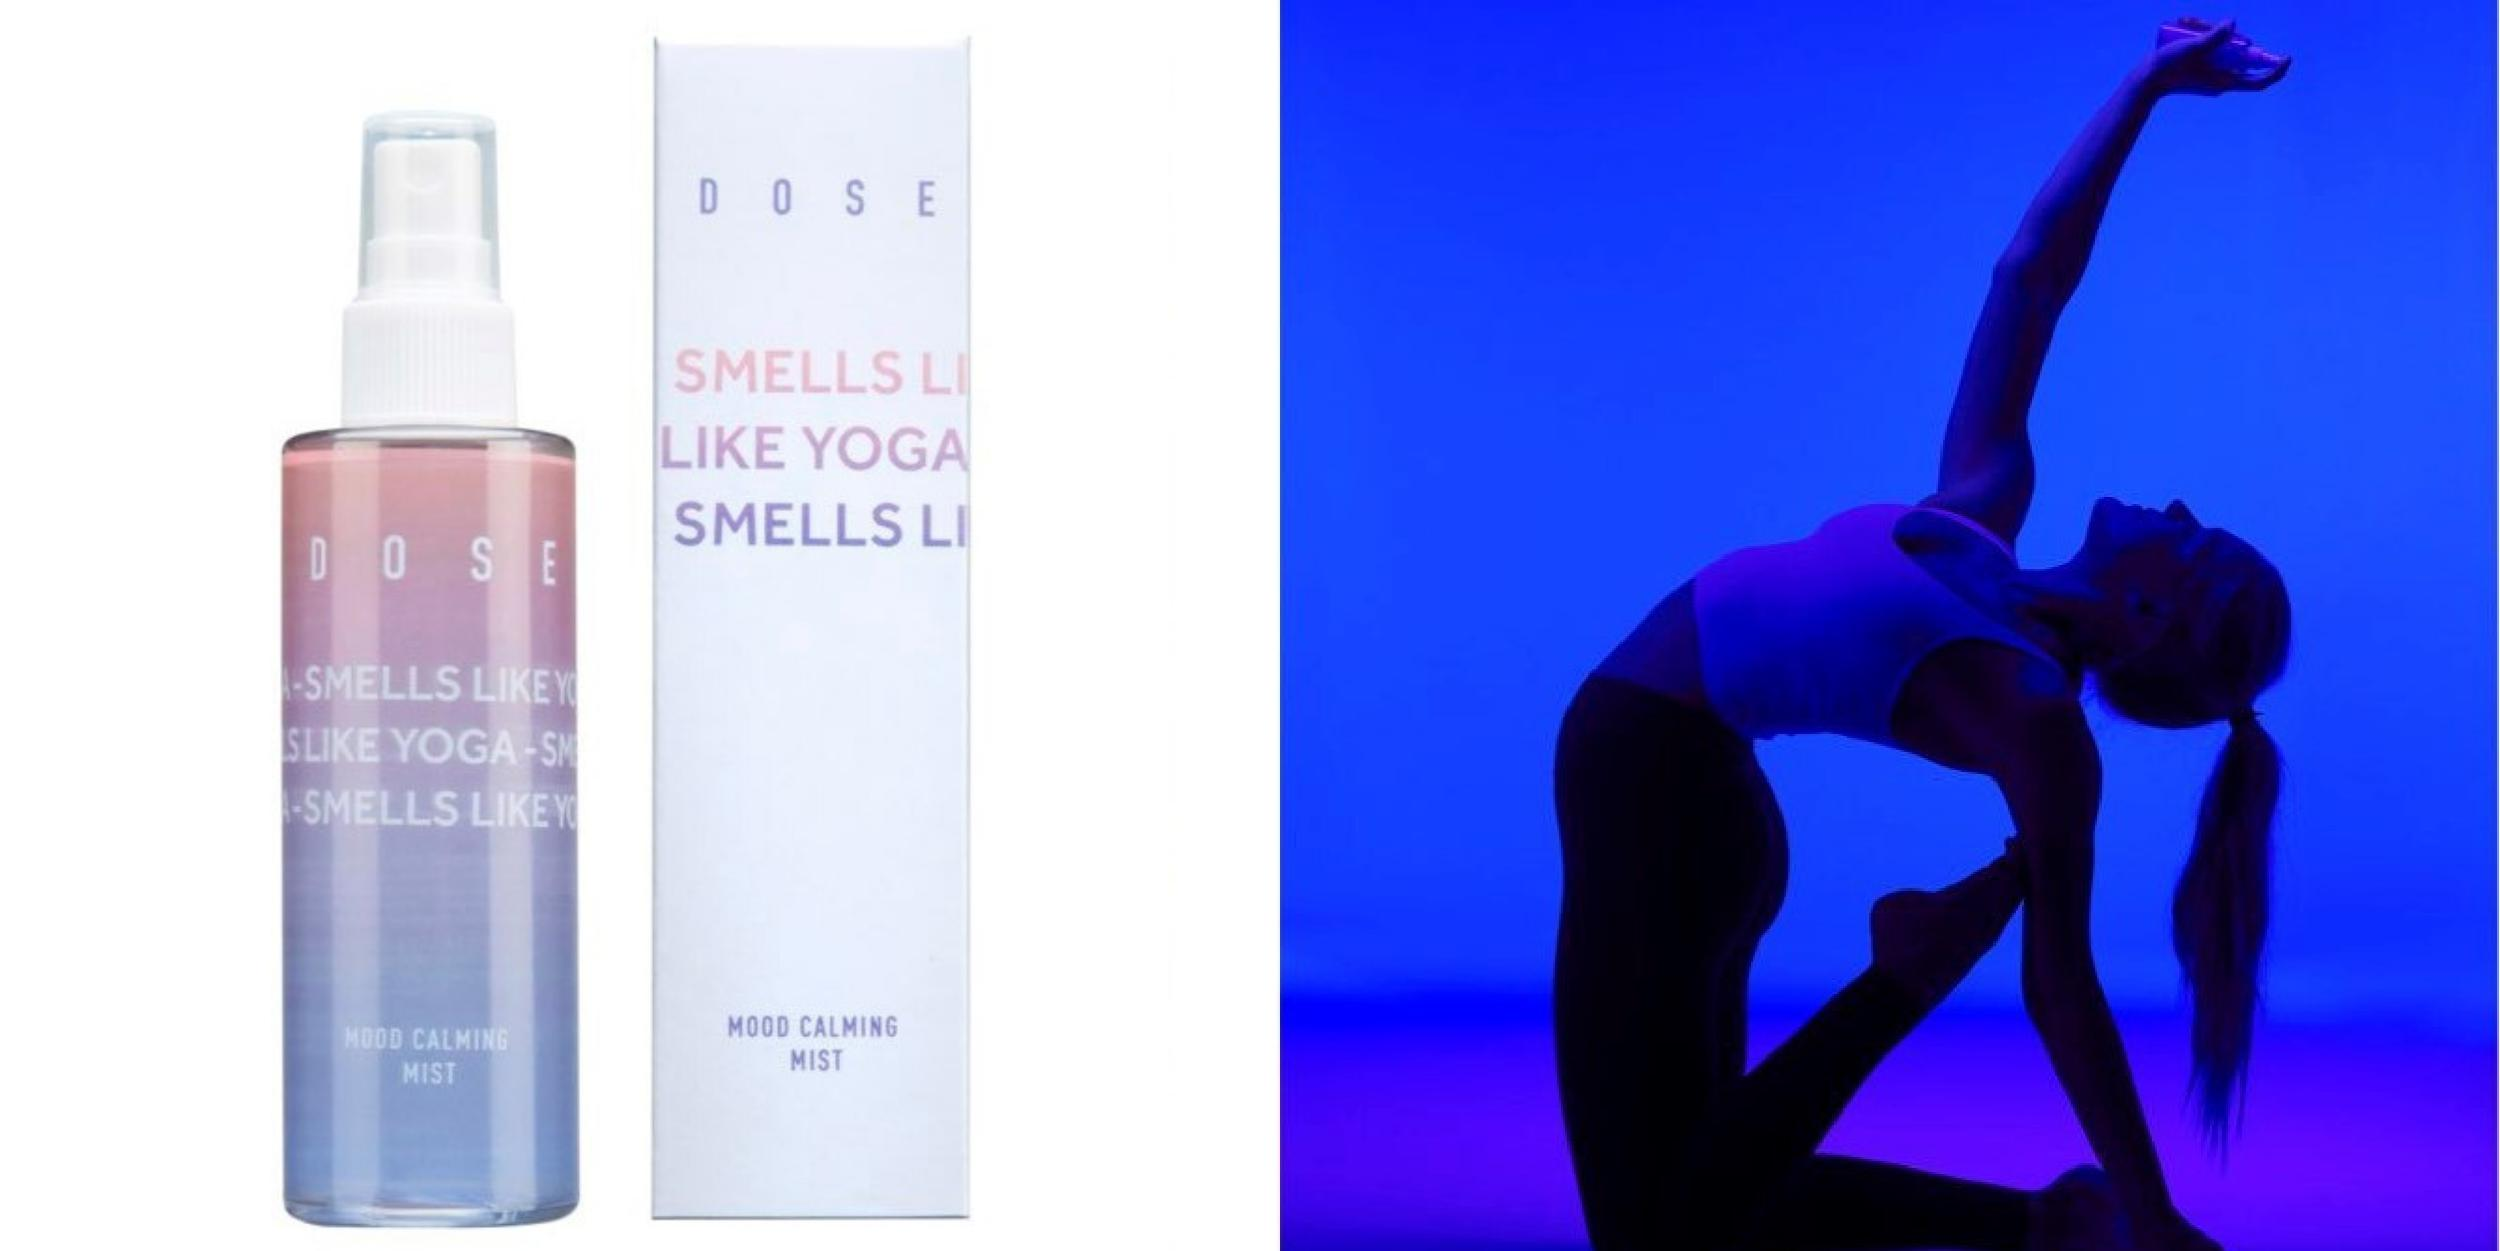 DOSE has launched a range of mood-boosting mists